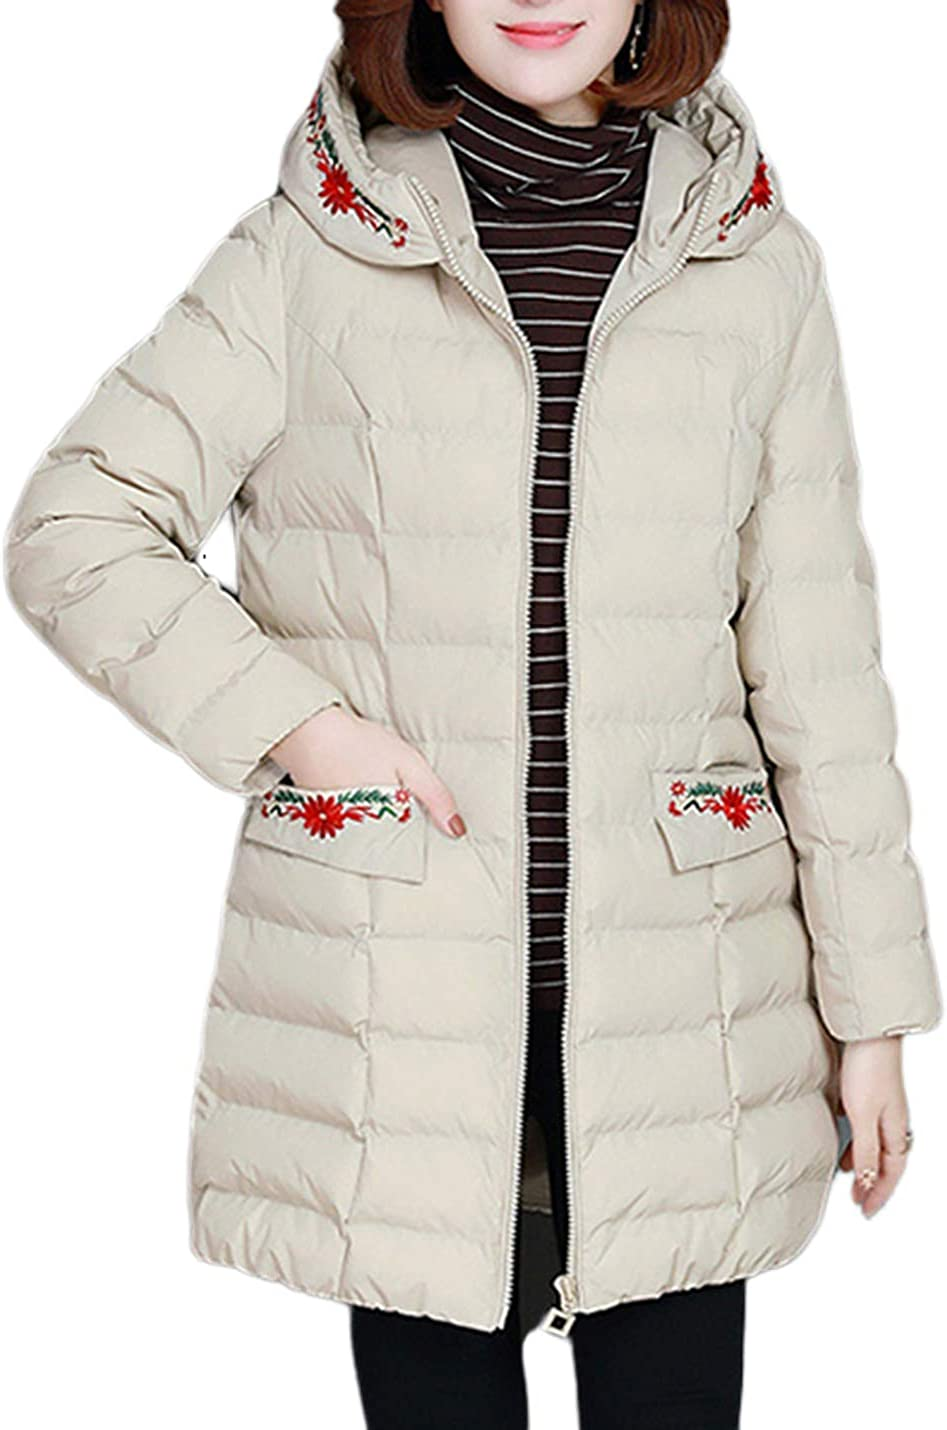 Uaneo Women's Loose Casual Thick Embroidered Hoodie Quilted Padded Puffy Parka Jackets(White-XS)